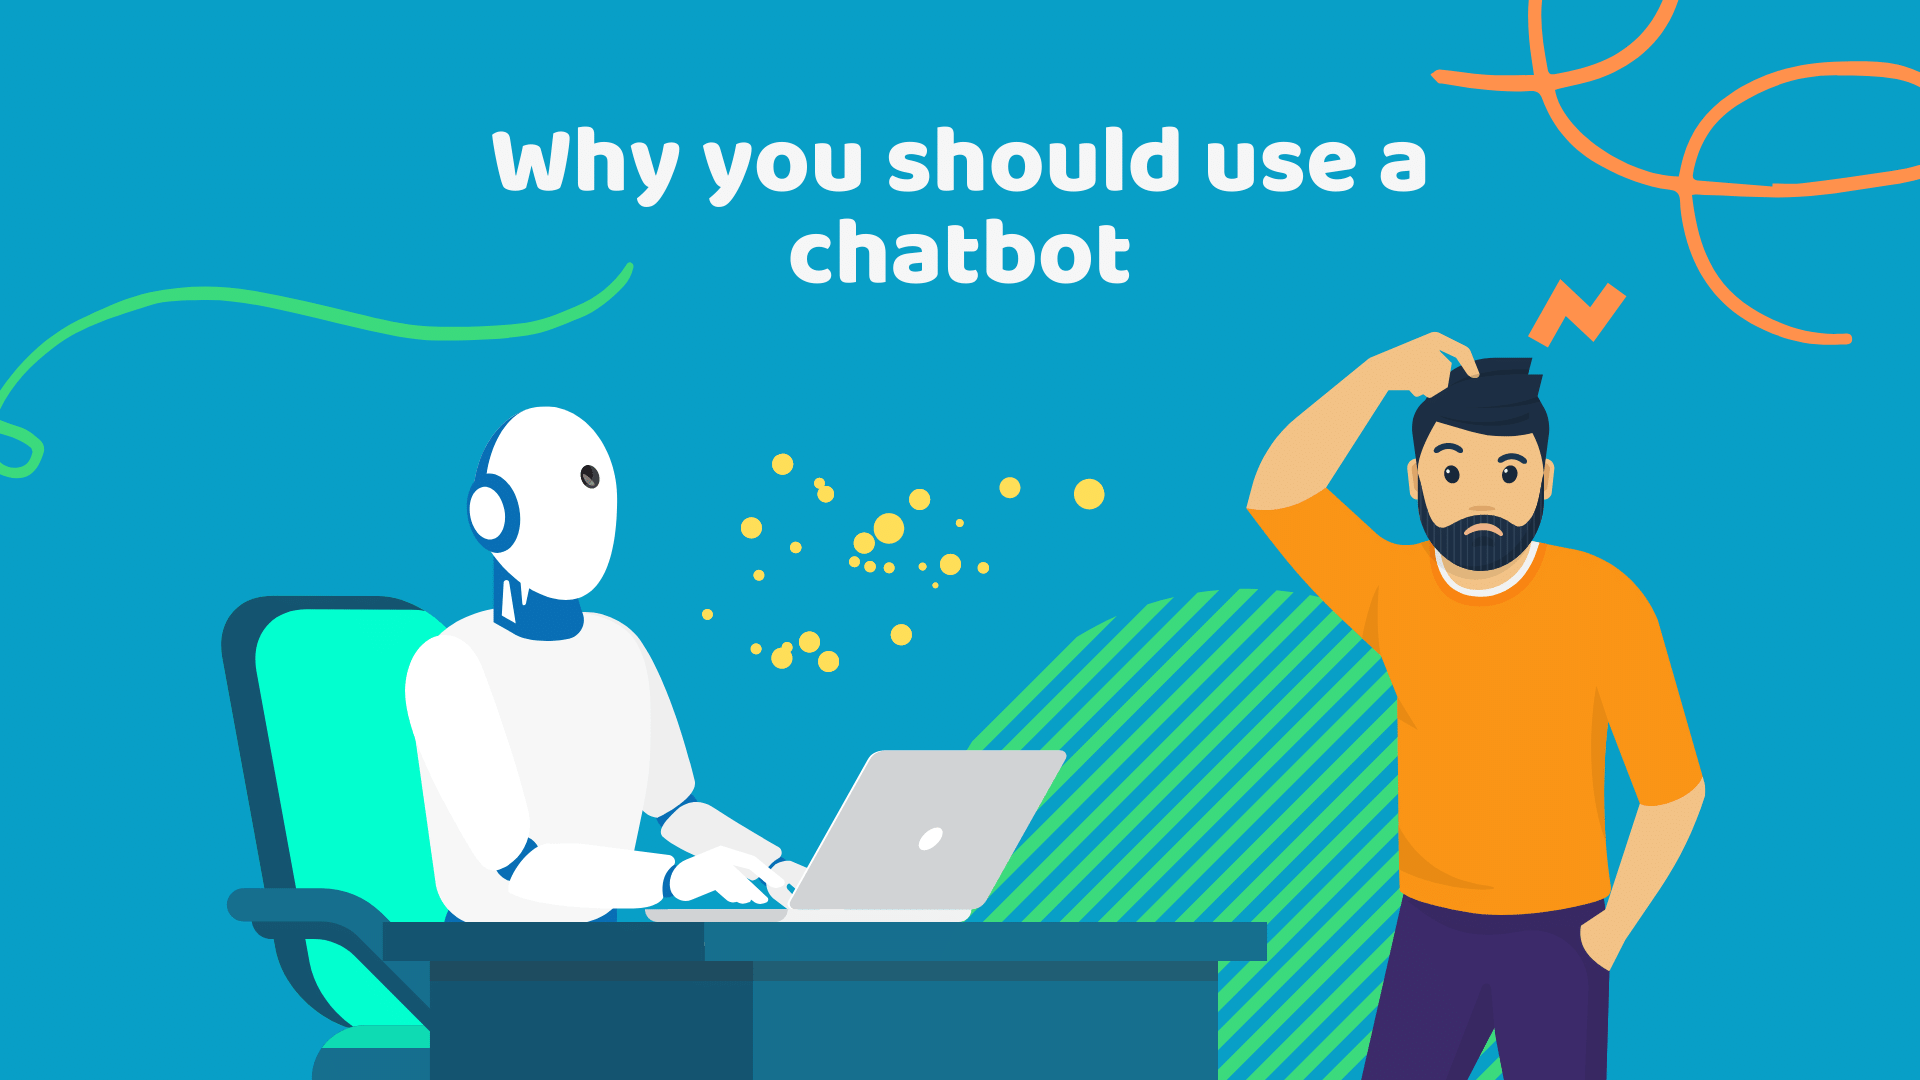 Top 9 reasons why you should use a Chatbot in your business